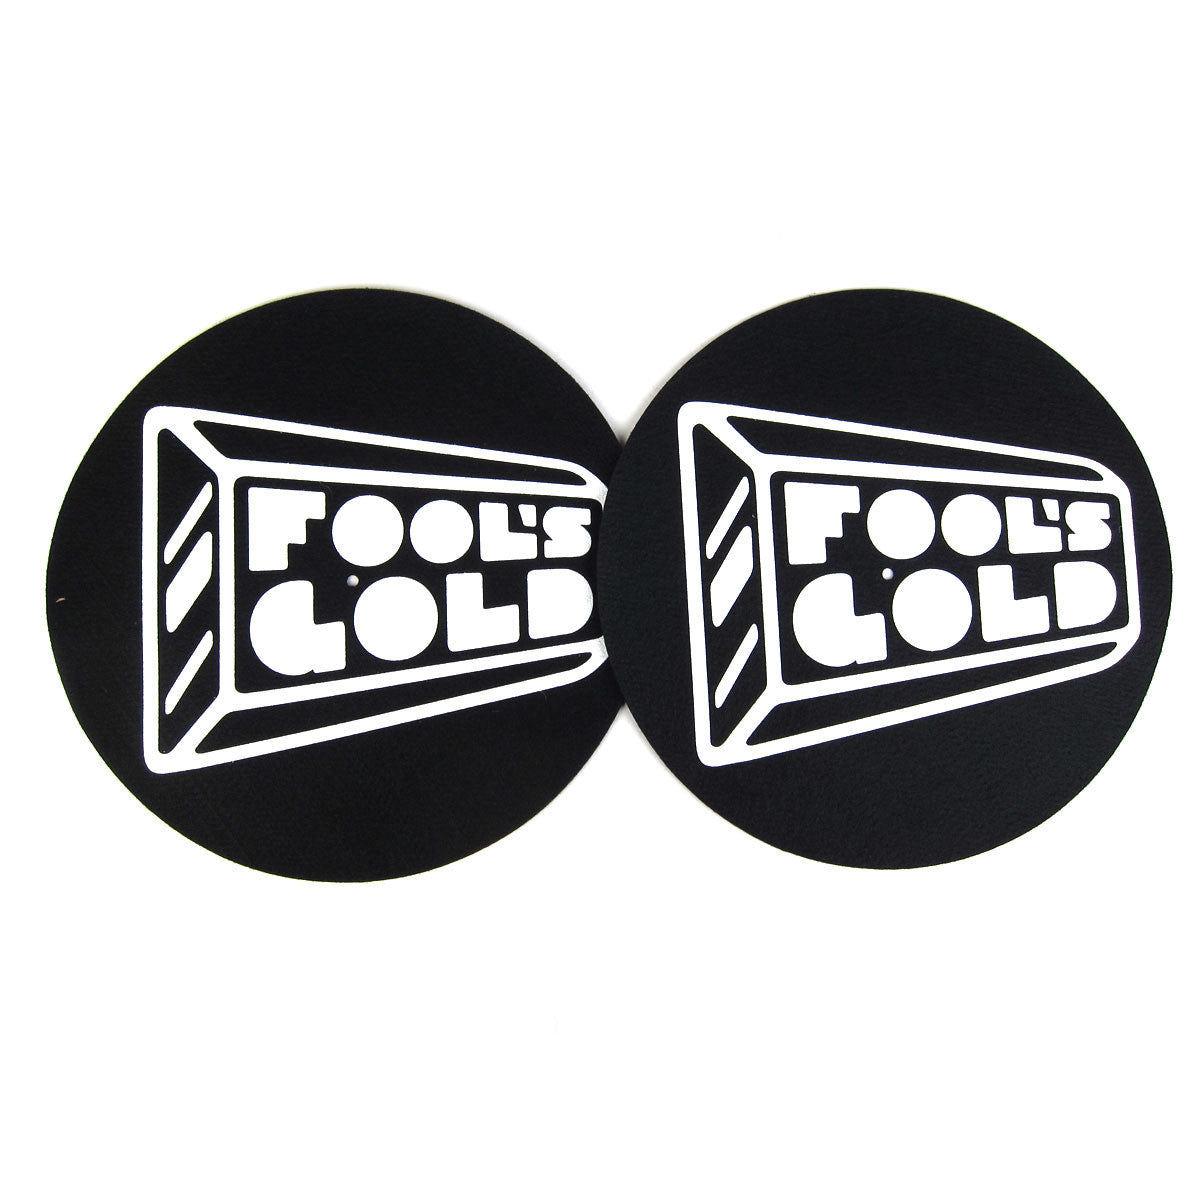 Serato: Fool's Gold Pyrite Break Serato Pressing + Slipmats (Pair) slipmat